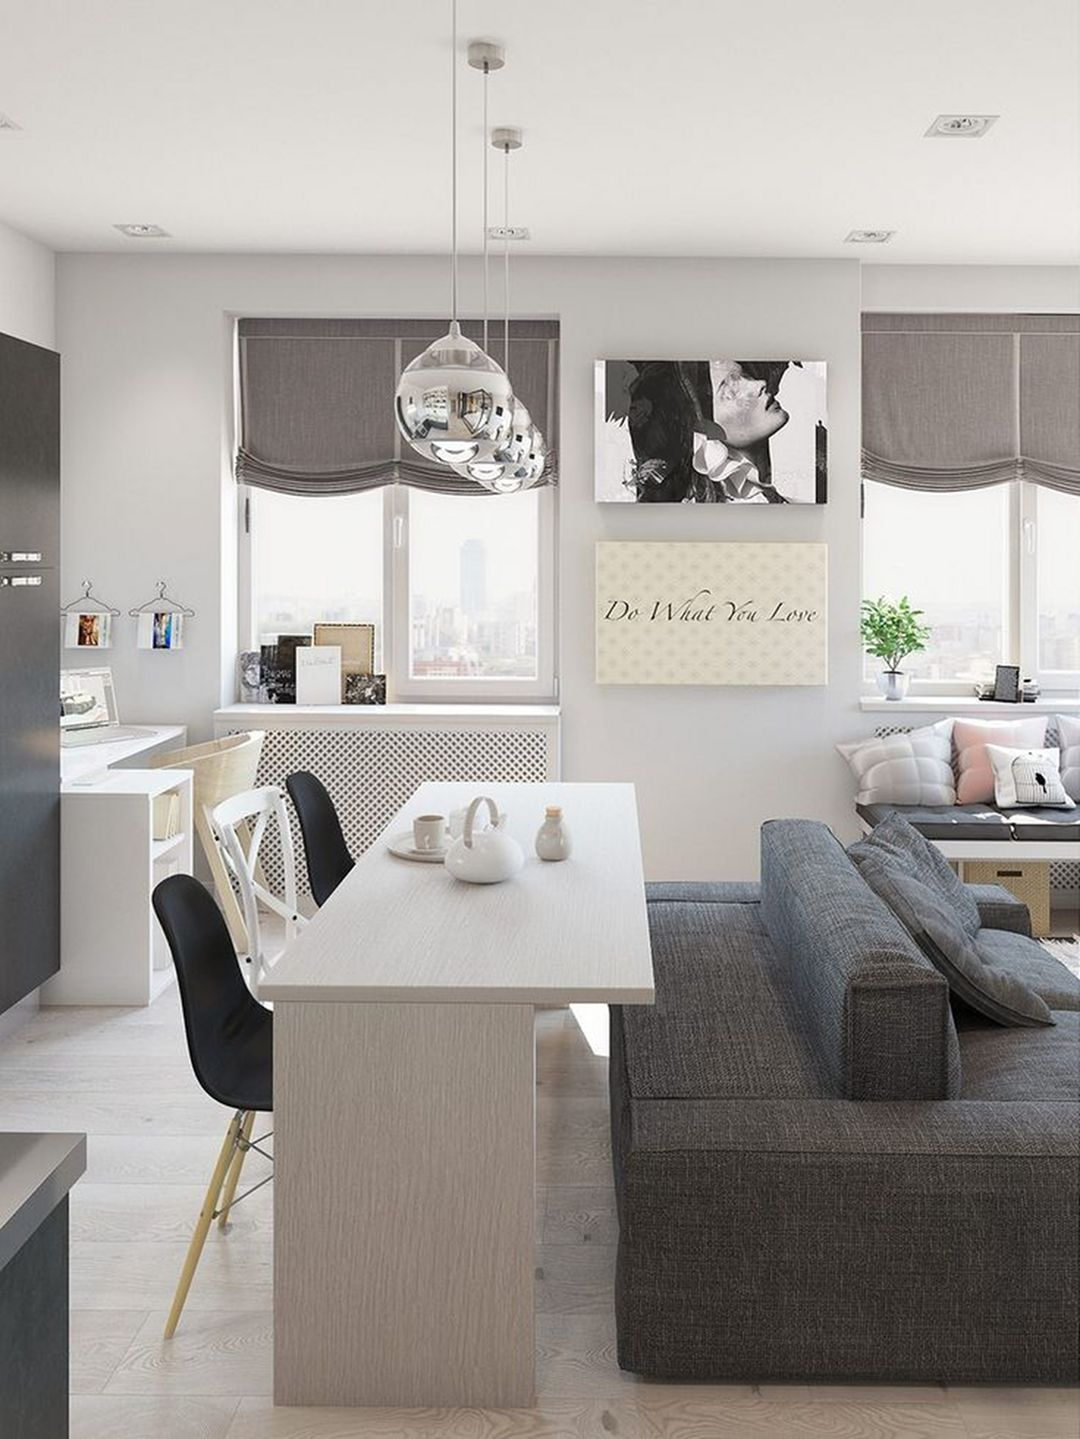 40+ Best Apartment Interior Decoration Ideas On A Budget | our new ...